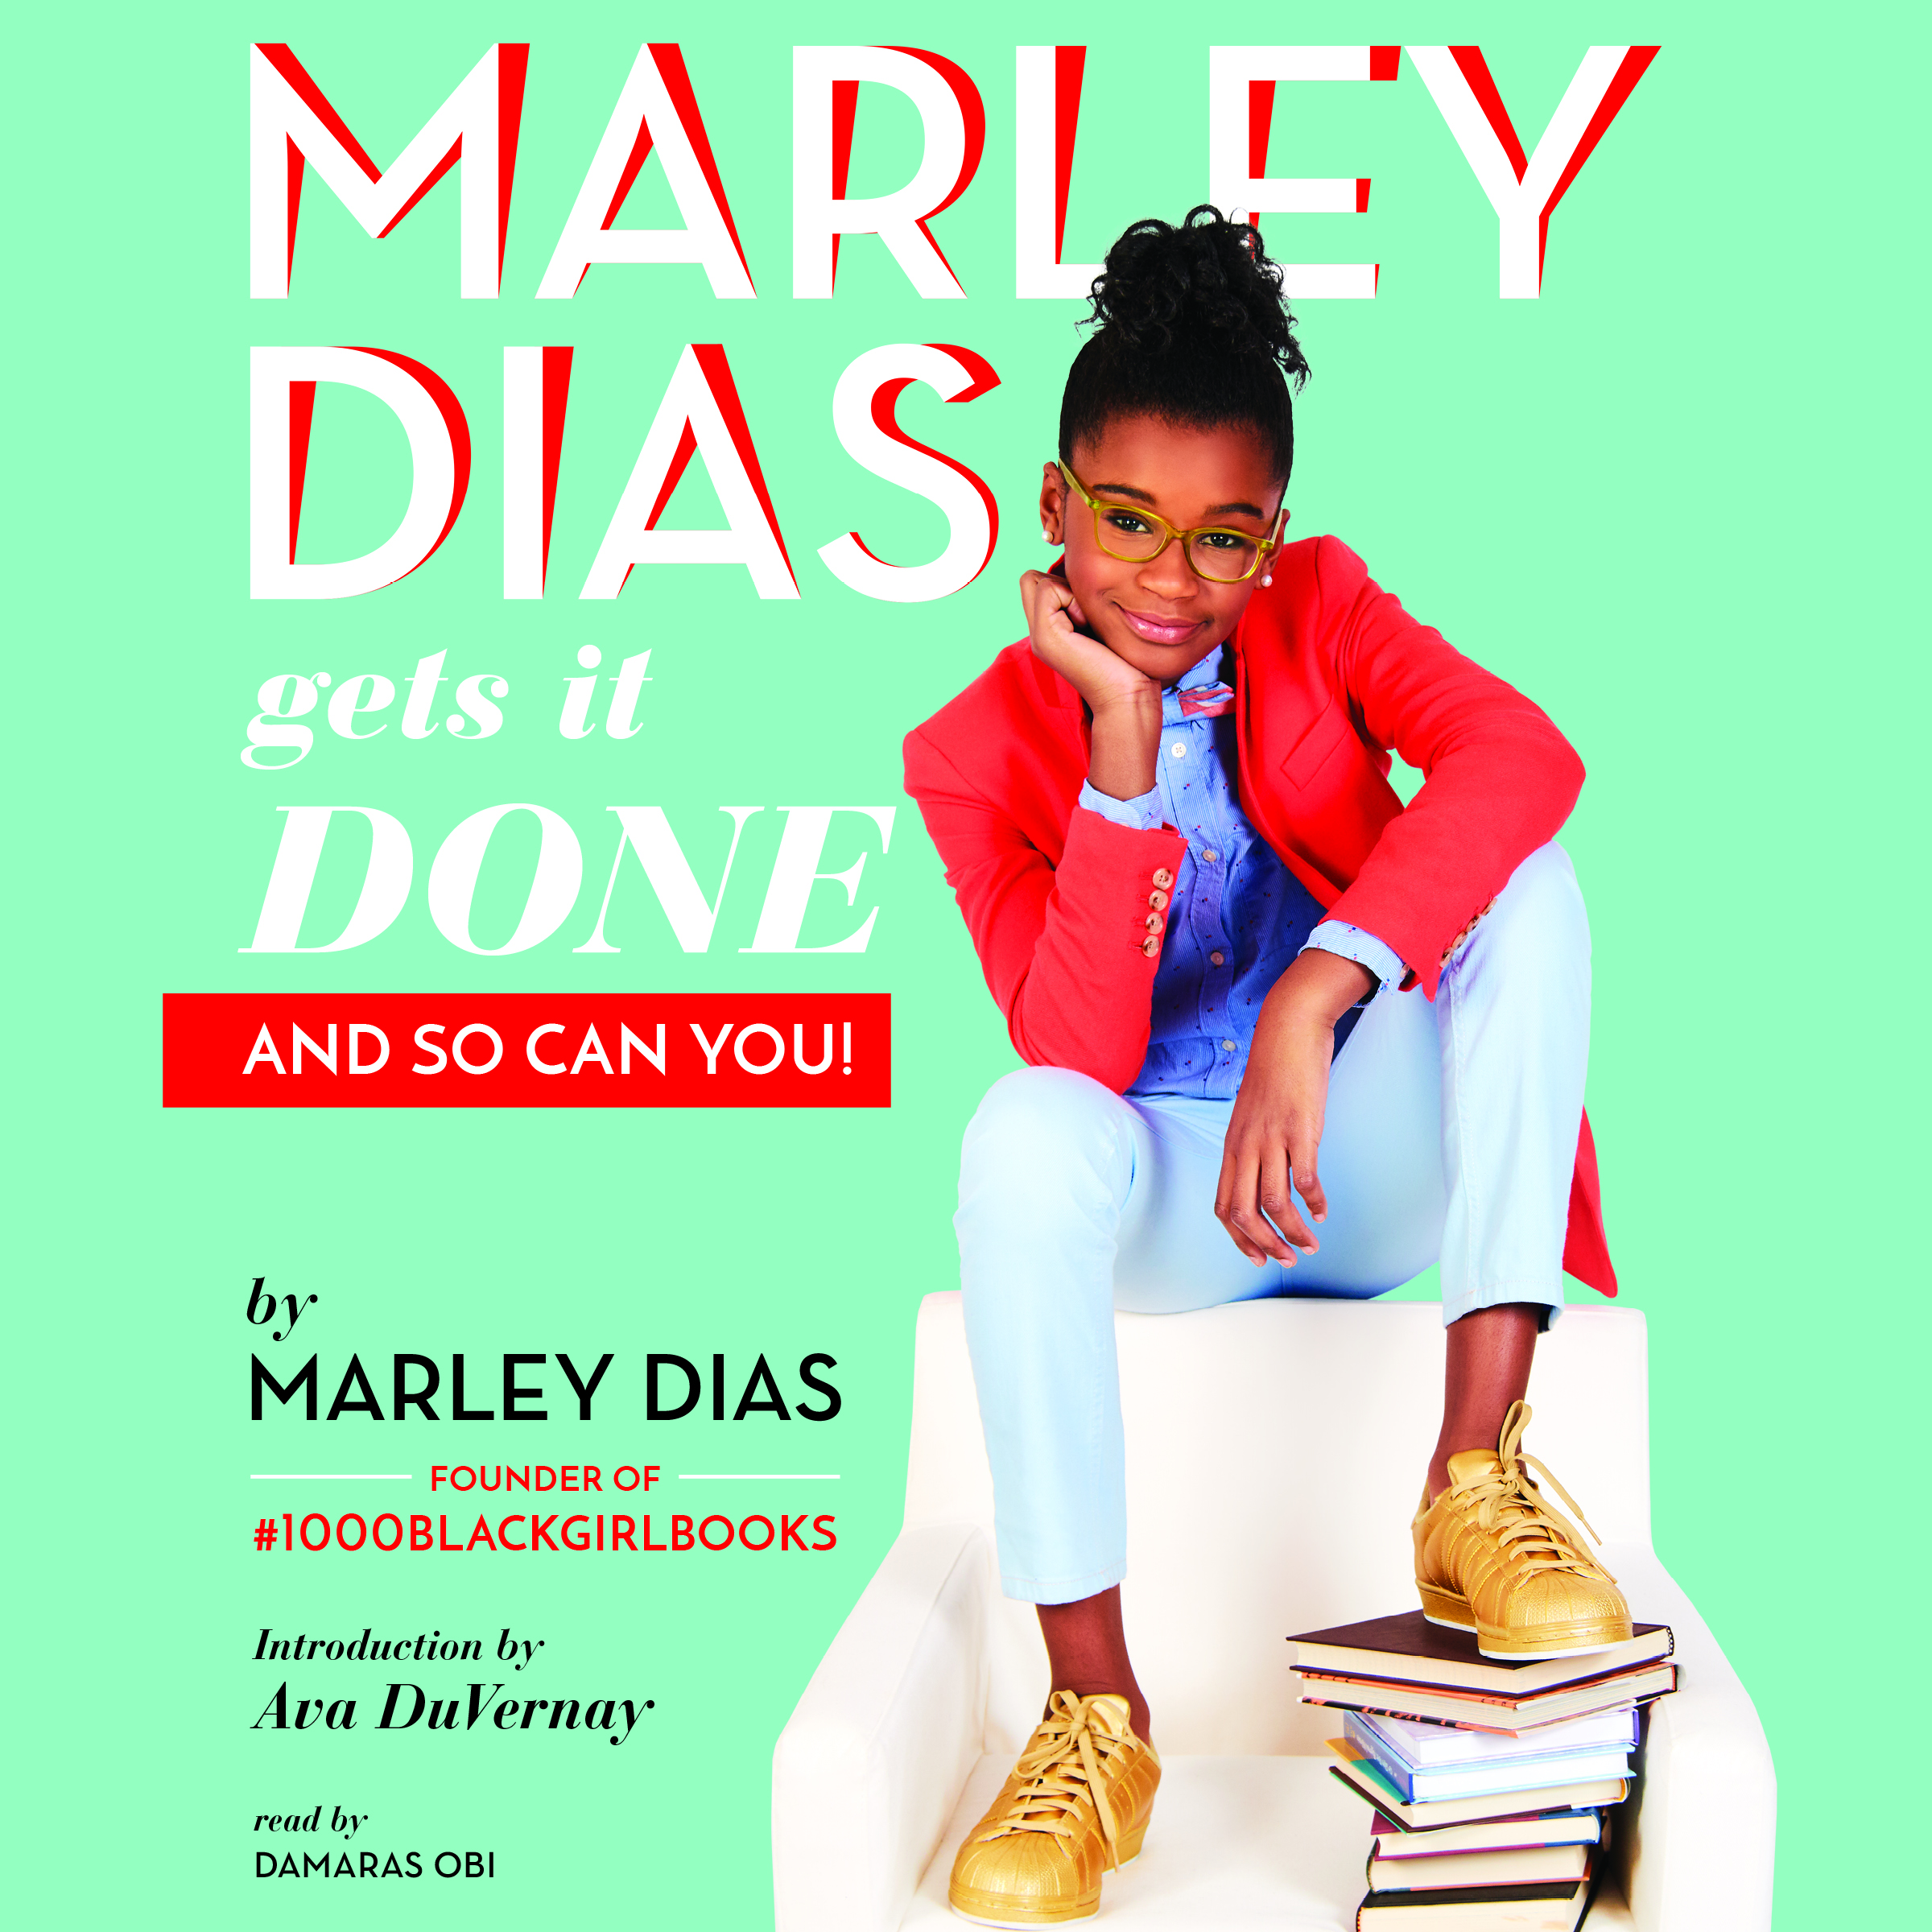 Marley Dias in a red blazer and jeans